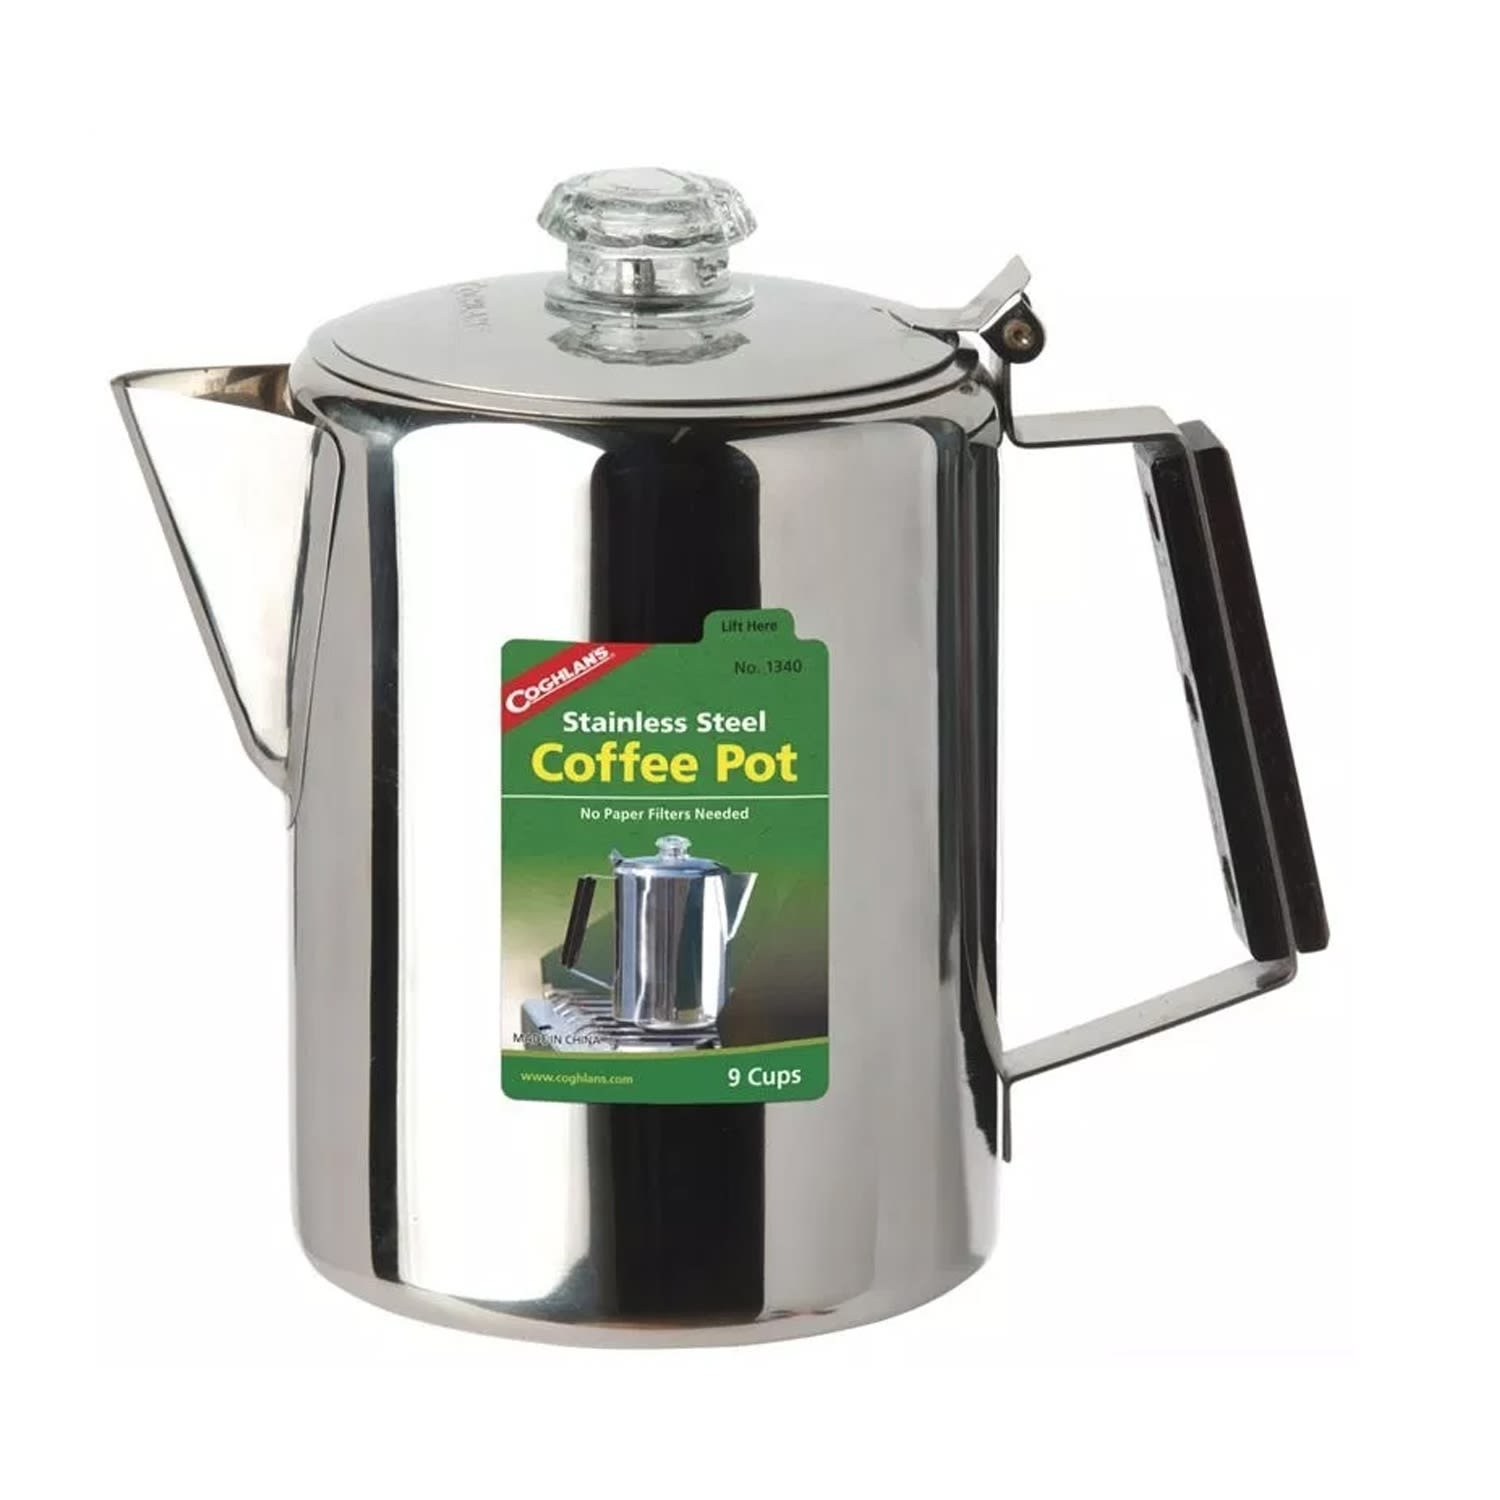 Coghlan's Stainless Stell 9 Cup Coffee Percolator